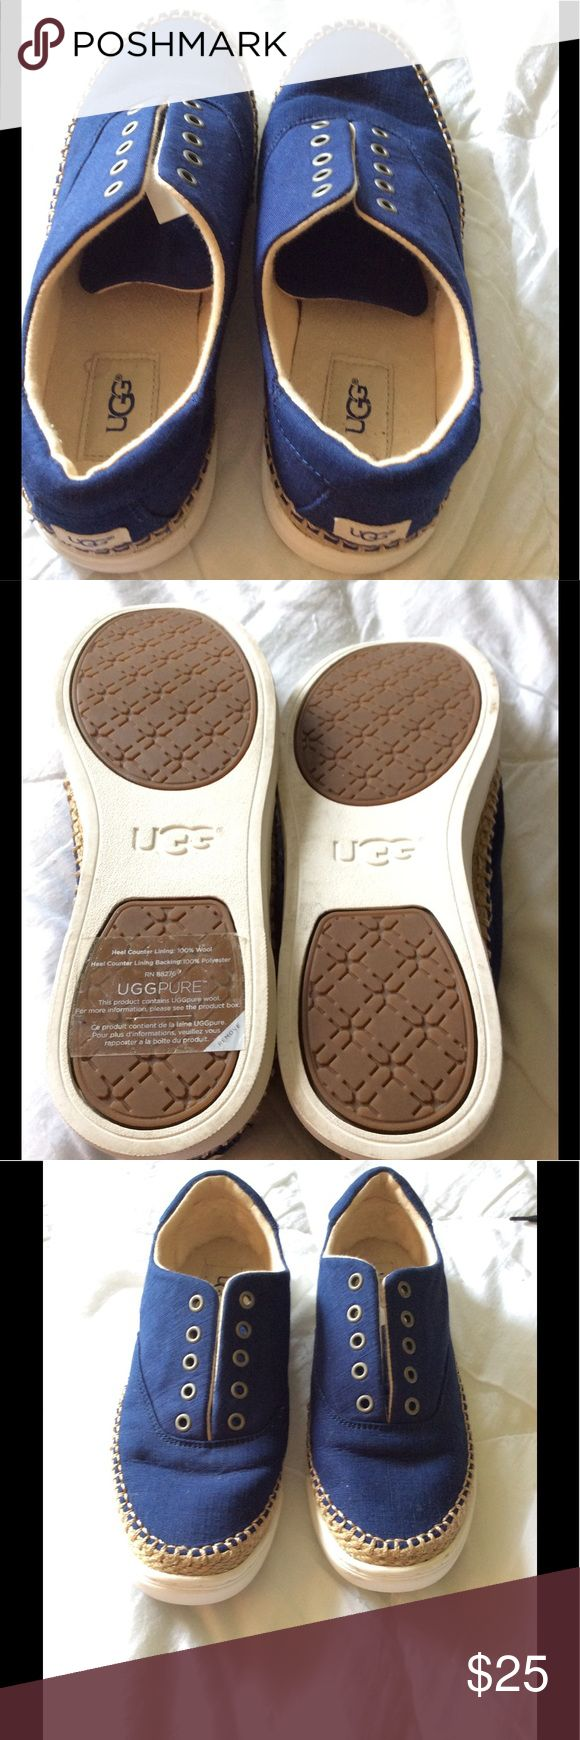 ugg sneakers without laces